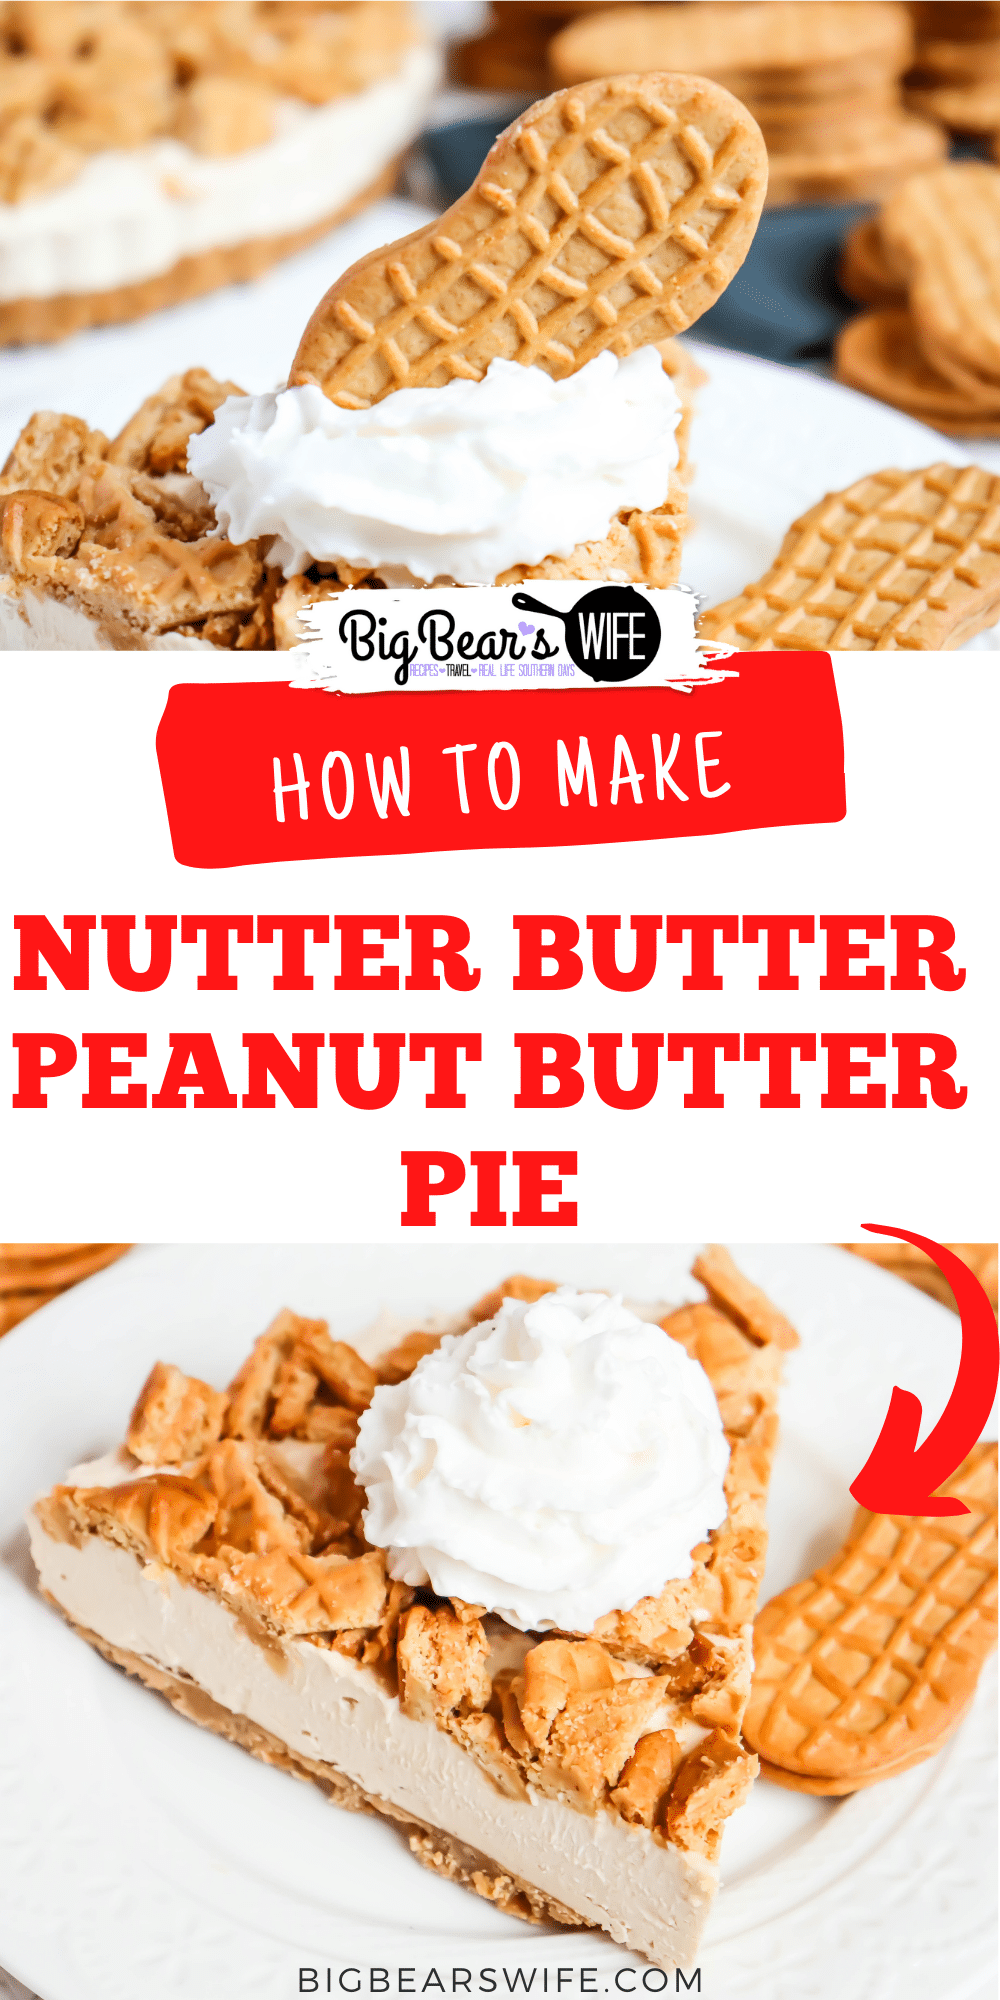 This pie is what peanut butter lovers dream about! Homemade Nutter Butter Peanut Butter pie is packed with peanut butter and has a Nutter Butter crust and topping! via @bigbearswife